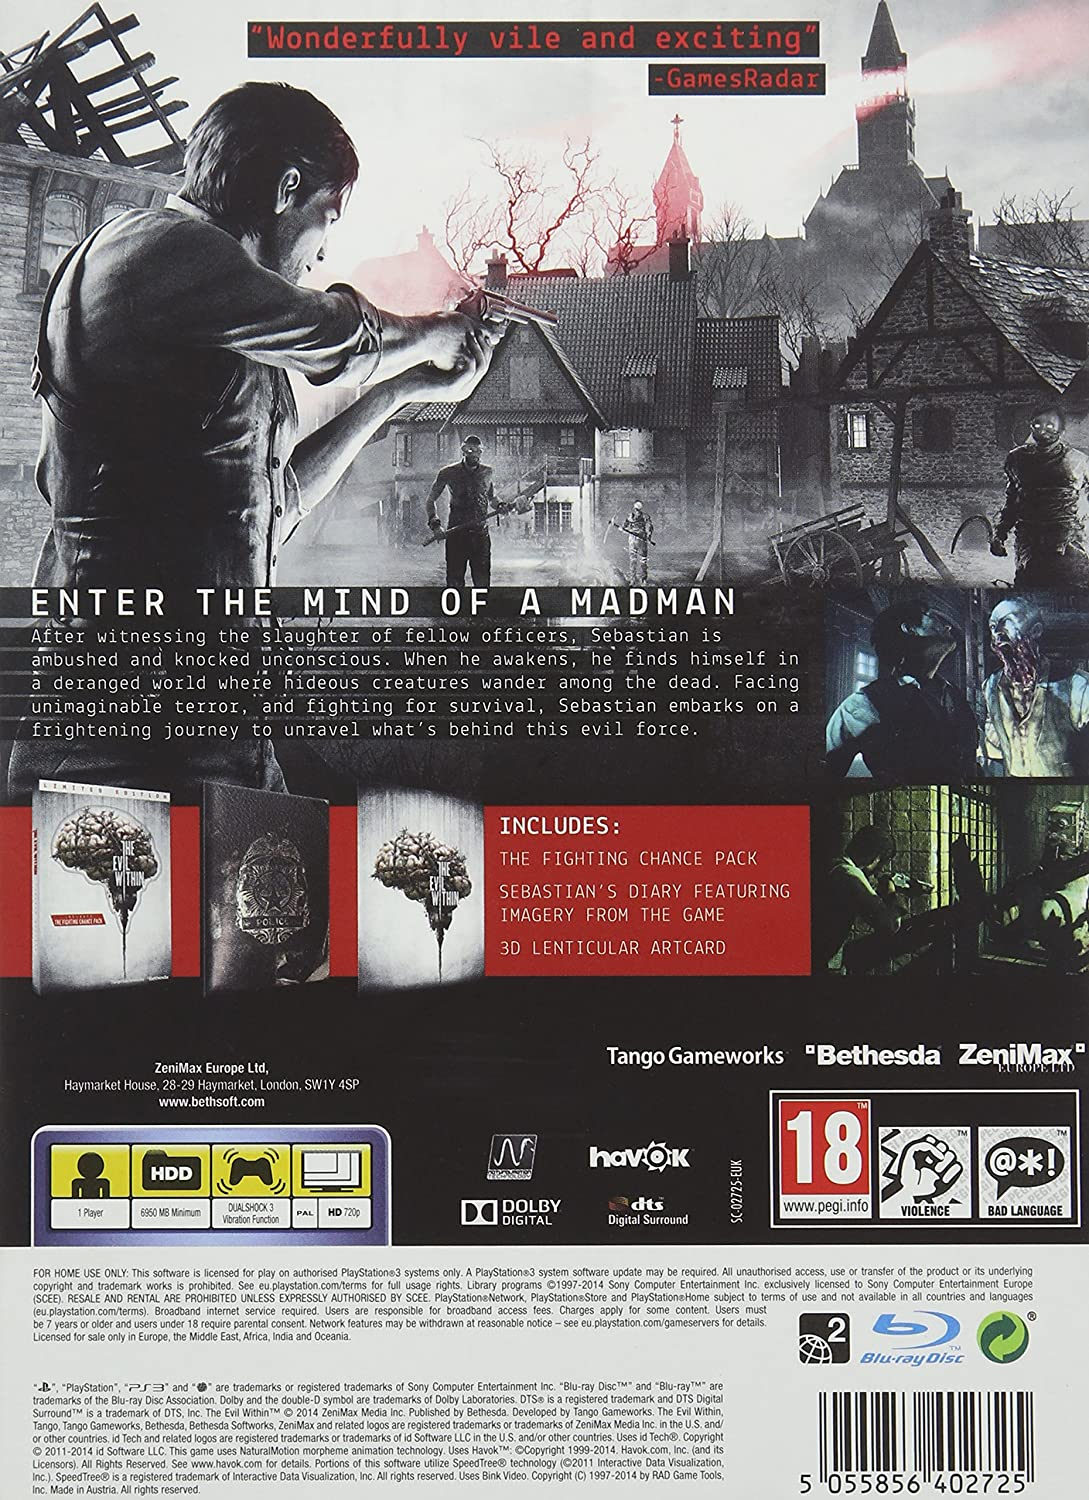 The Evil Within Limited Edition: Amazon.es: Videojuegos